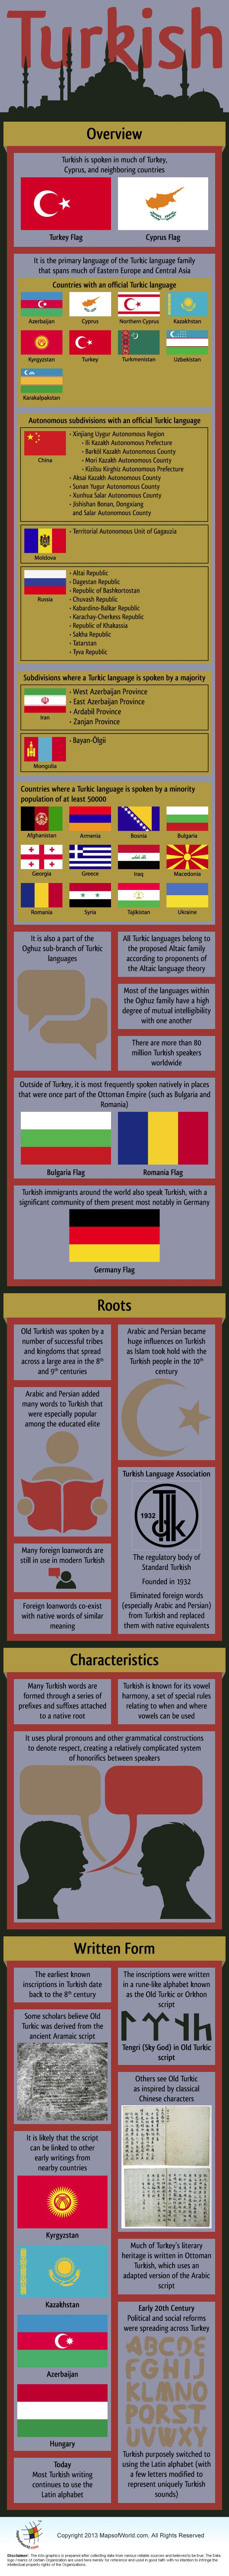 Infographic of Turkish Language.. Orkhon script